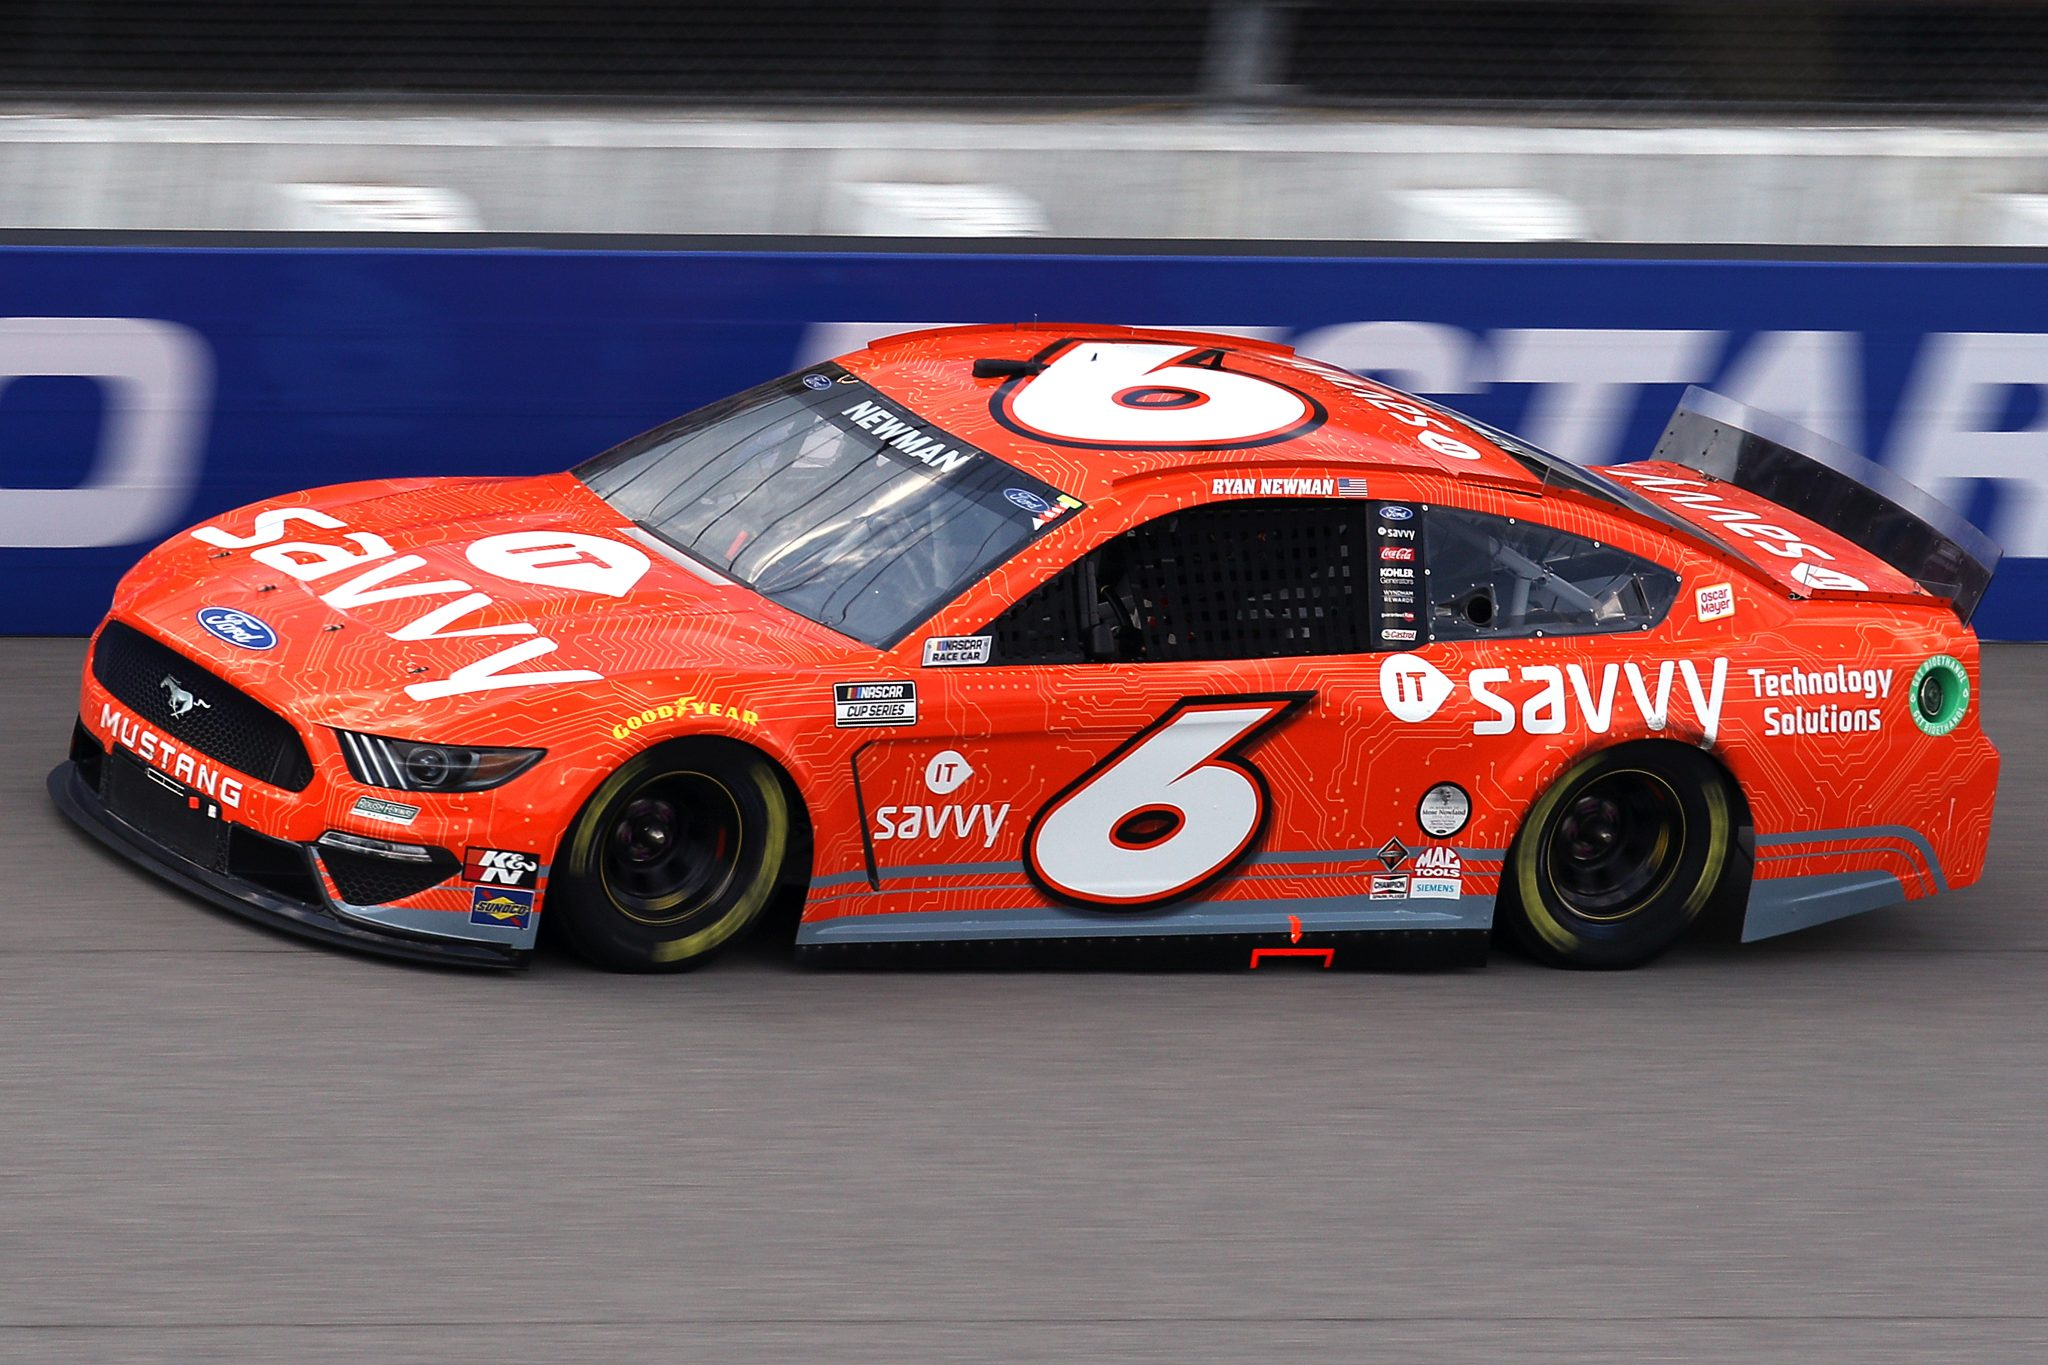 BROOKLYN, MICHIGAN - AUGUST 22: Ryan Newman, driver of the #6 ITsavvy Ford, drives during the NASCAR Cup Series FireKeepers Casino 400 at Michigan International Speedway on August 22, 2021 in Brooklyn, Michigan. (Photo by Sean Gardner/Getty Images) | Getty Images